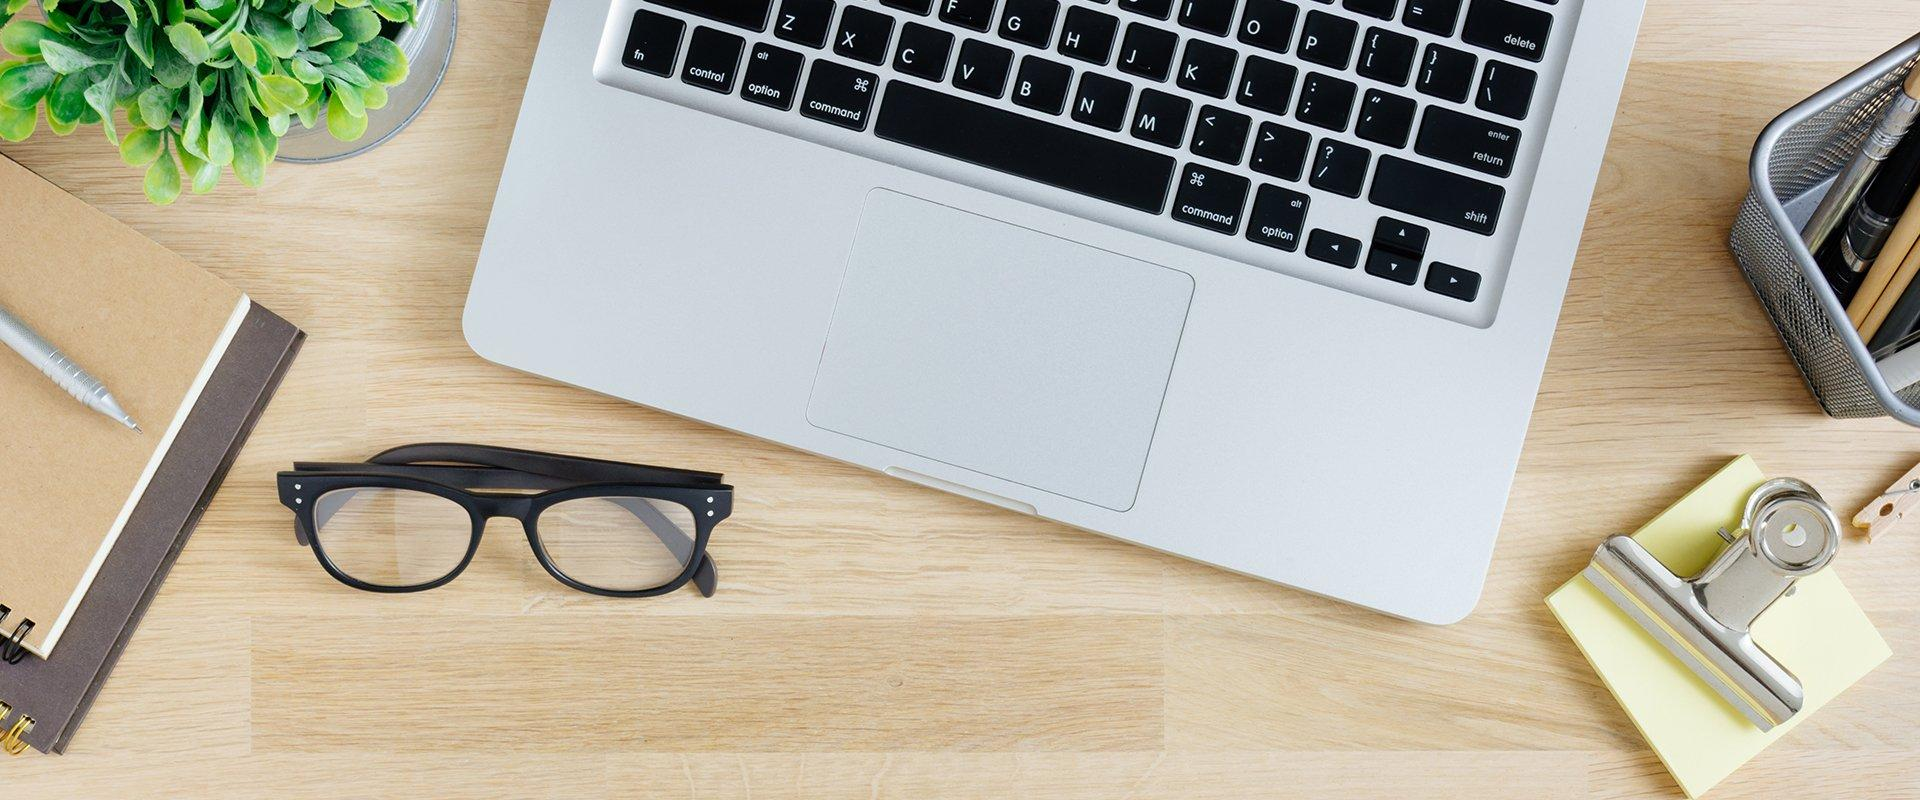 a laptop and glasses on a table